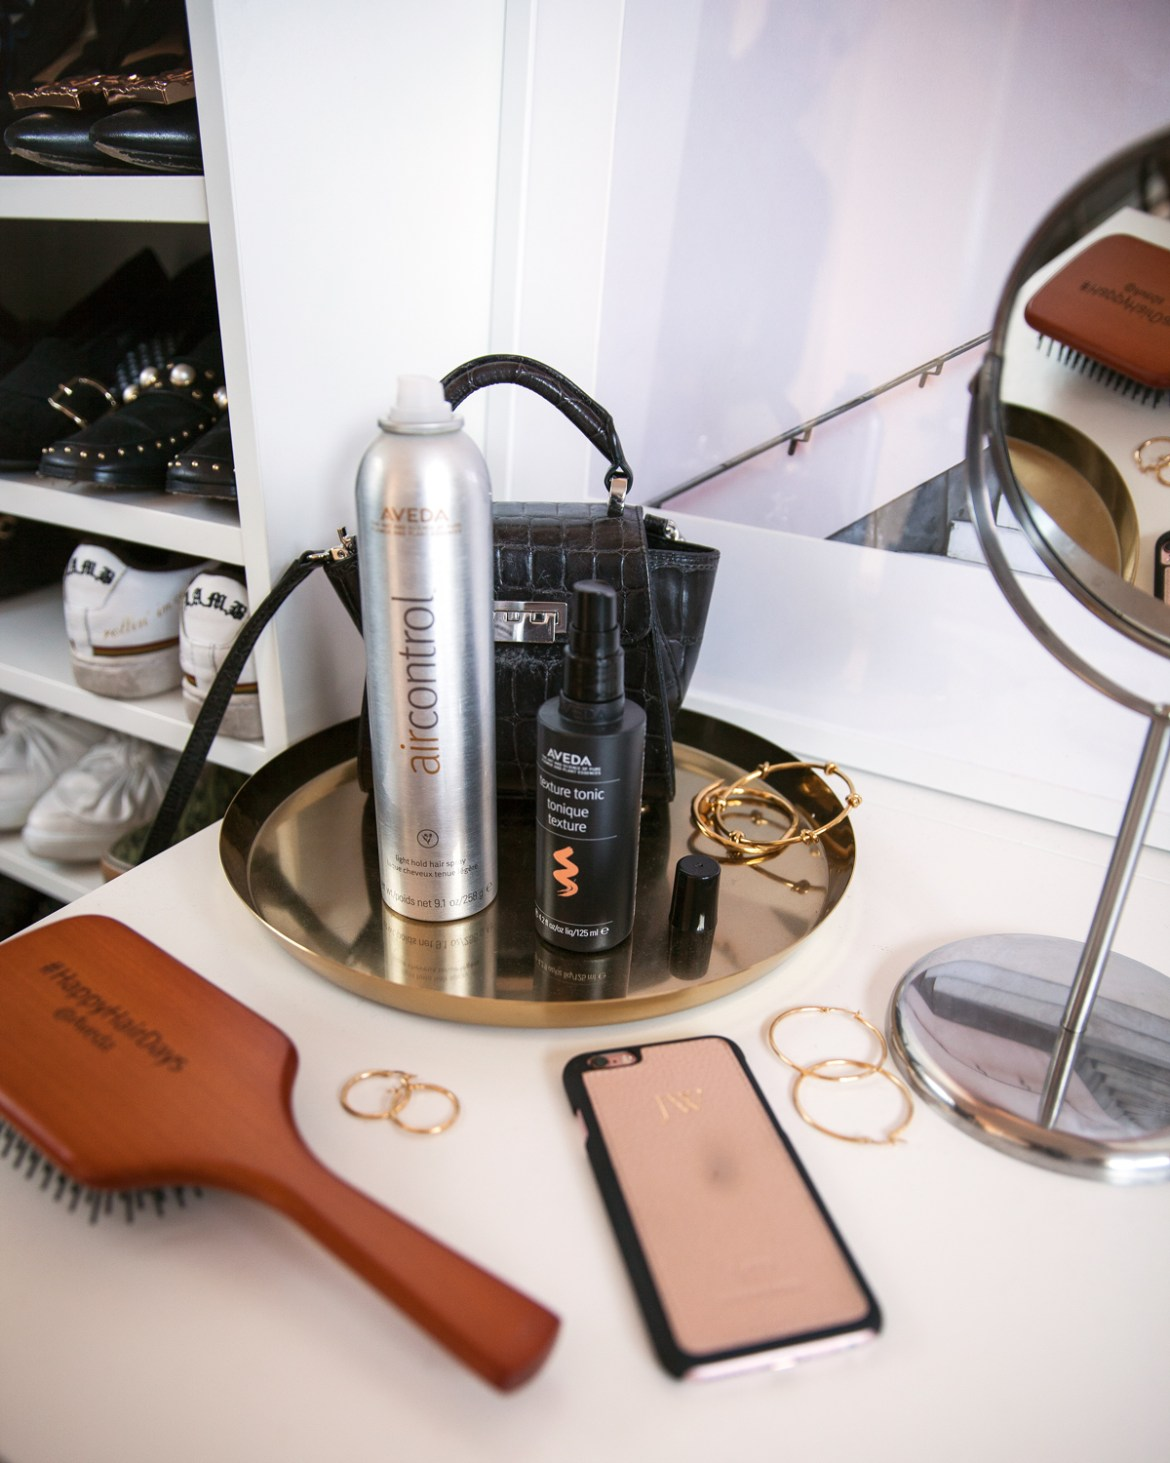 Spring beauty edit for 2017 featuring Aveda hair products